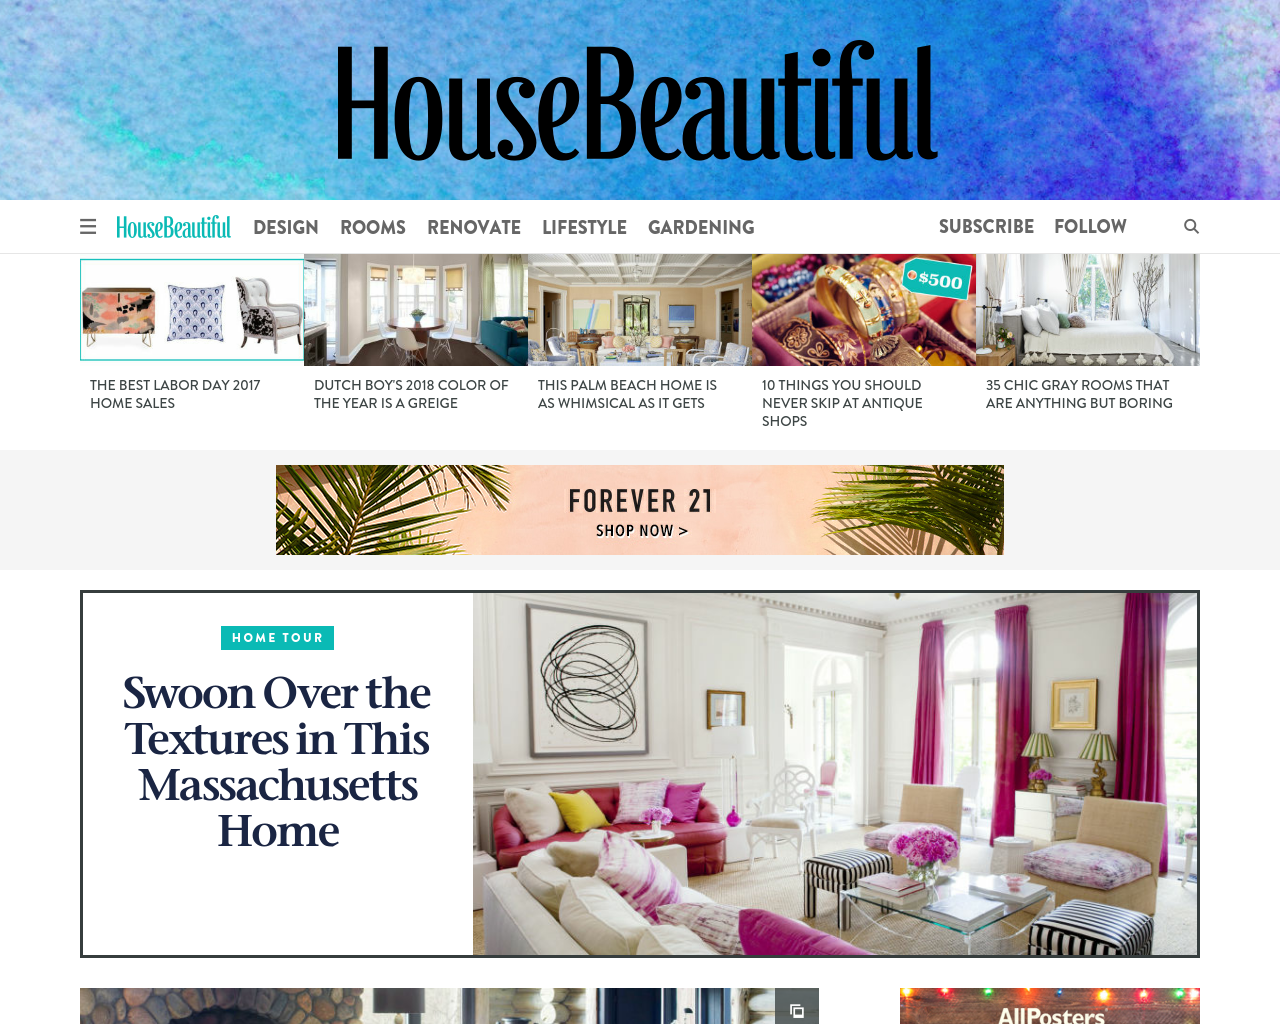 HouseBeautiful-Advertising-Reviews-Pricing